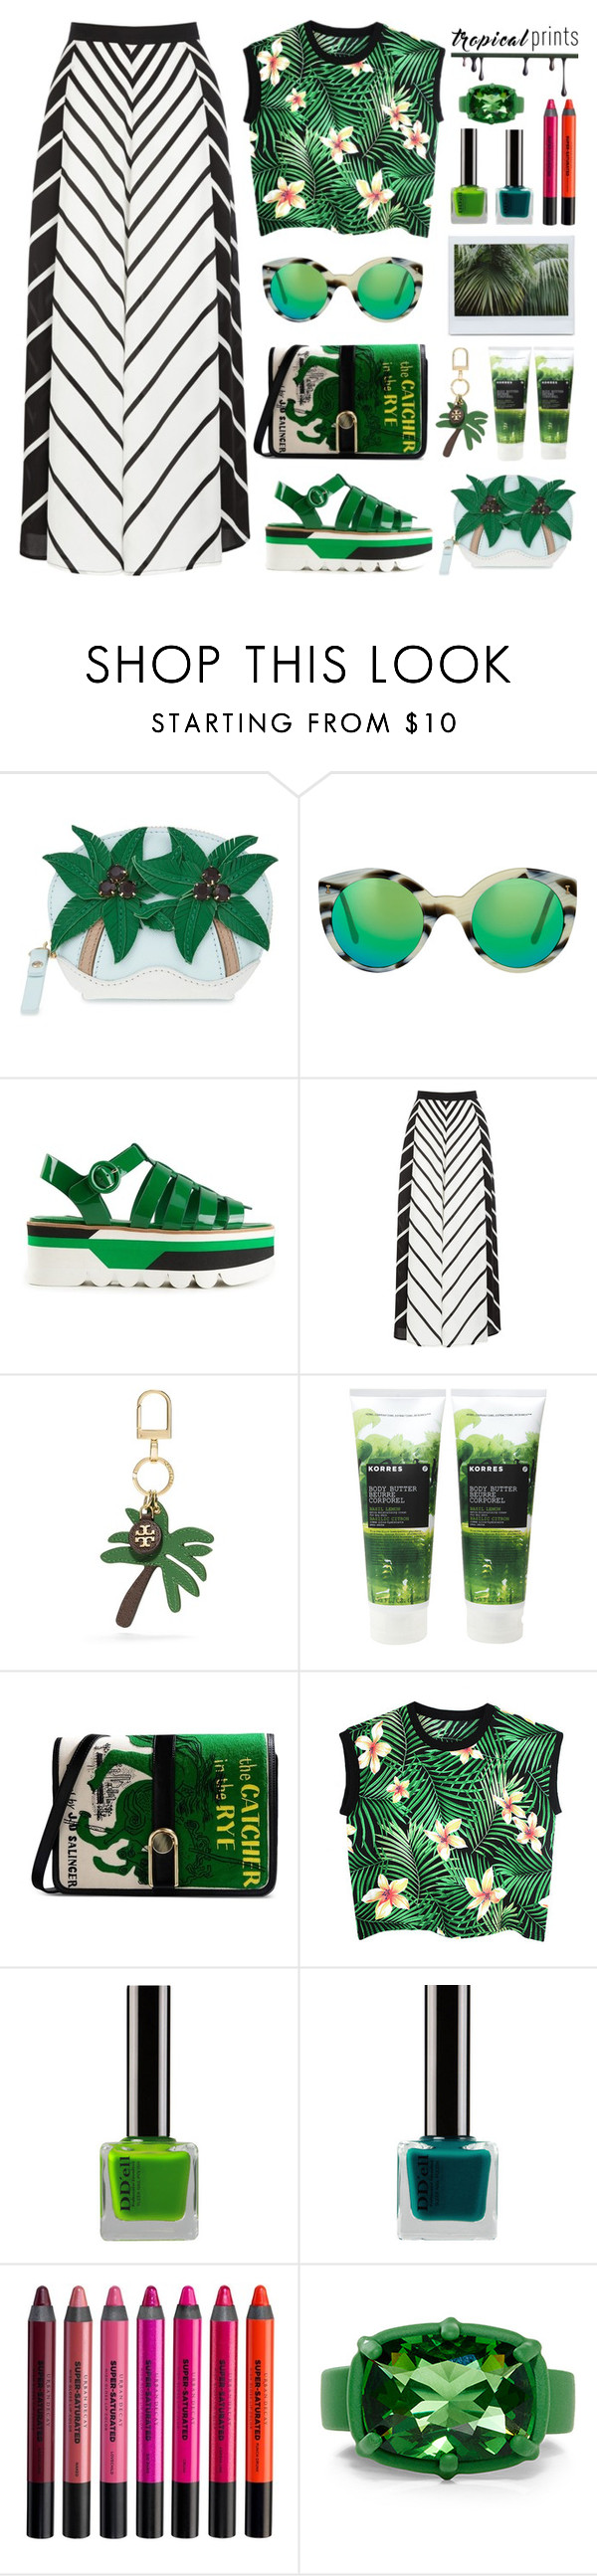 """""""In Tropical Mood"""" by stavrolga ❤ liked on Polyvore featuring Kate Spade, Illesteva, Dolce&Gabbana, Warehouse, Tory Burch, Korres, Olympia Le-Tan, Urban Decay, tropicalprints and polyvoreeditorial"""